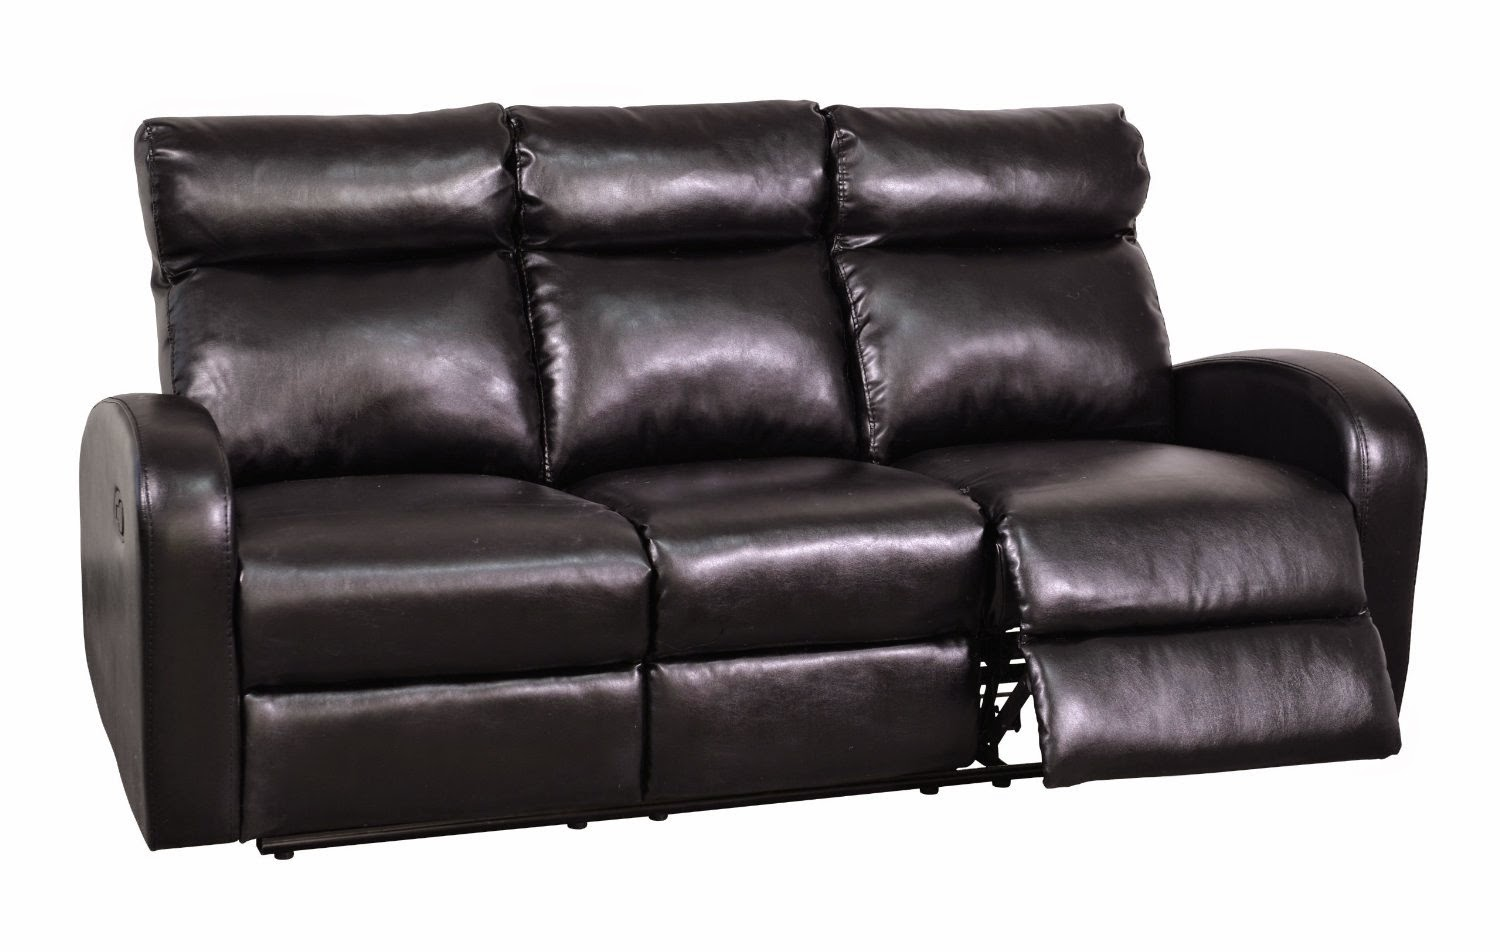 simmons blackjack cocoa reclining sofa and loveseat chairs ireland cheap recliner sofas for sale contemporary